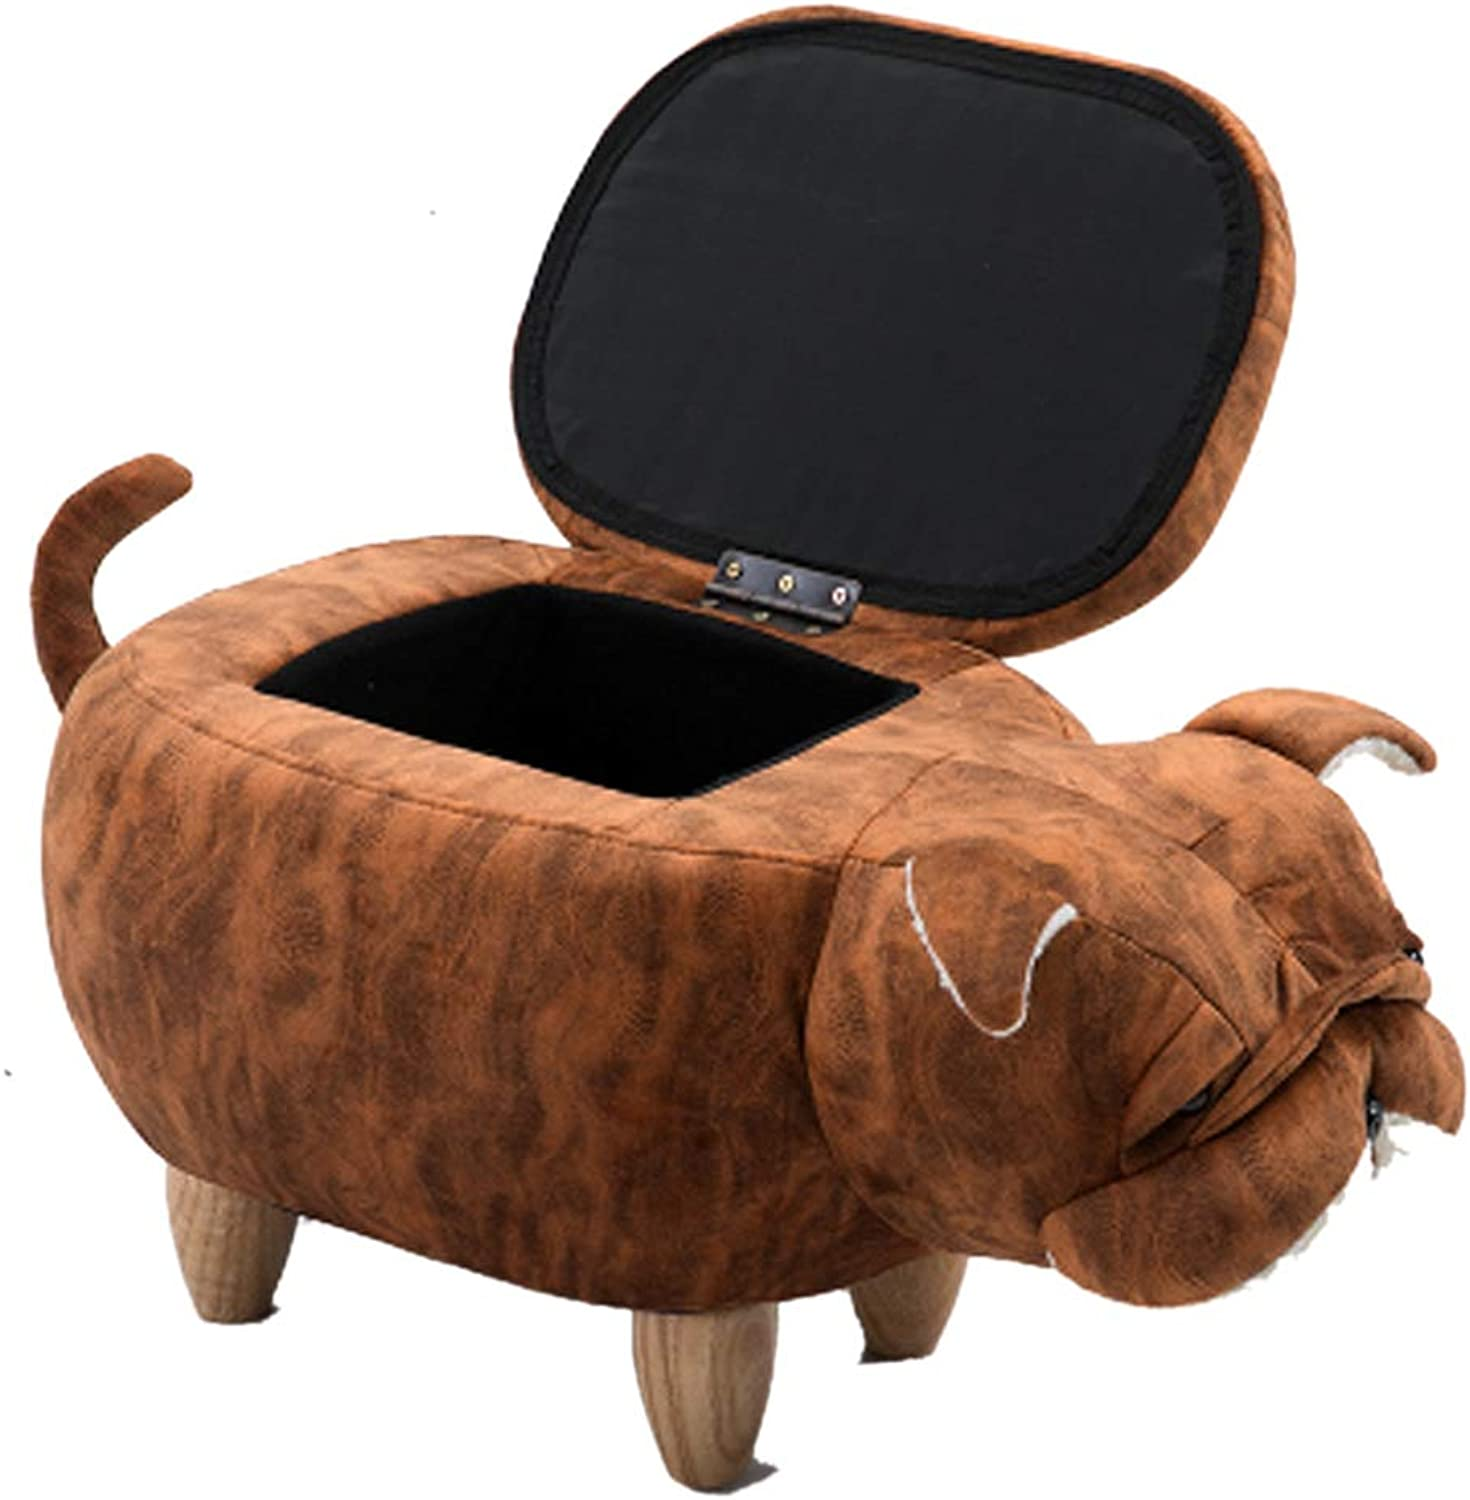 Cartoon Wooden Bench Cute Puppy for shoes Bench Solid Wood Storage Foot Stool Simple Sofa Coffee Table Stool Storage Storage Stool (color   Brown b)